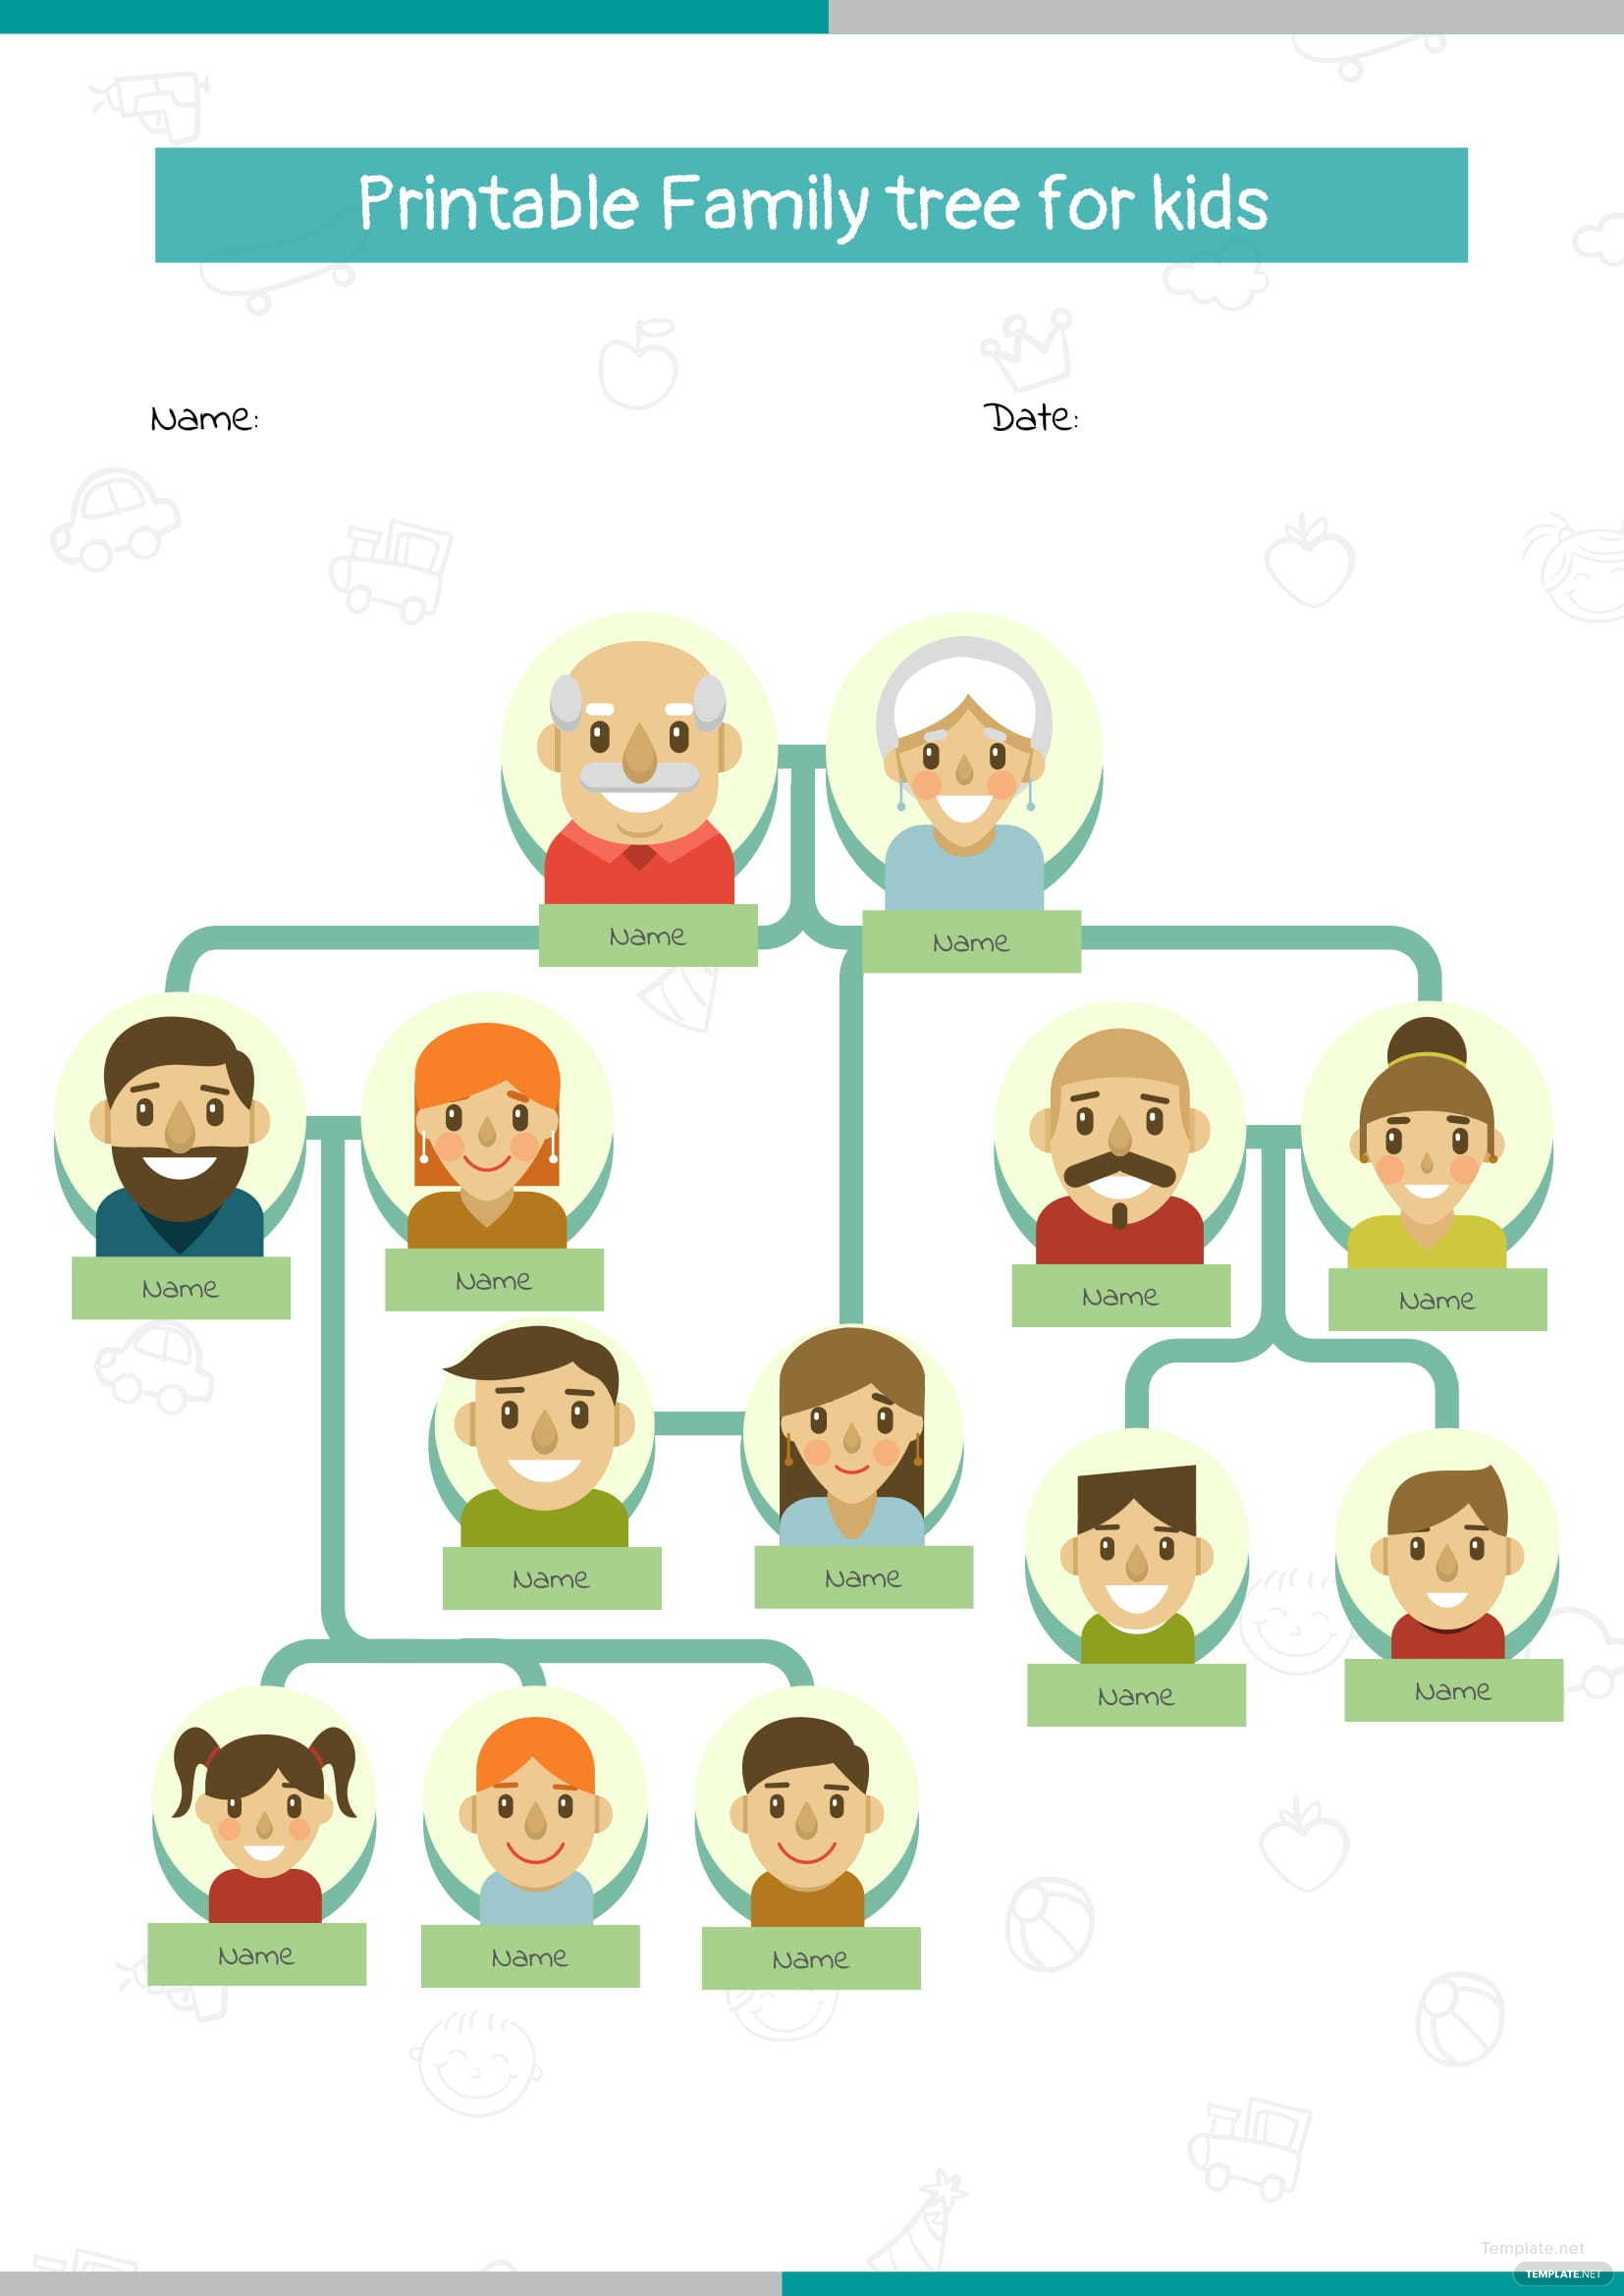 printable family tree for kids template in microsoft word